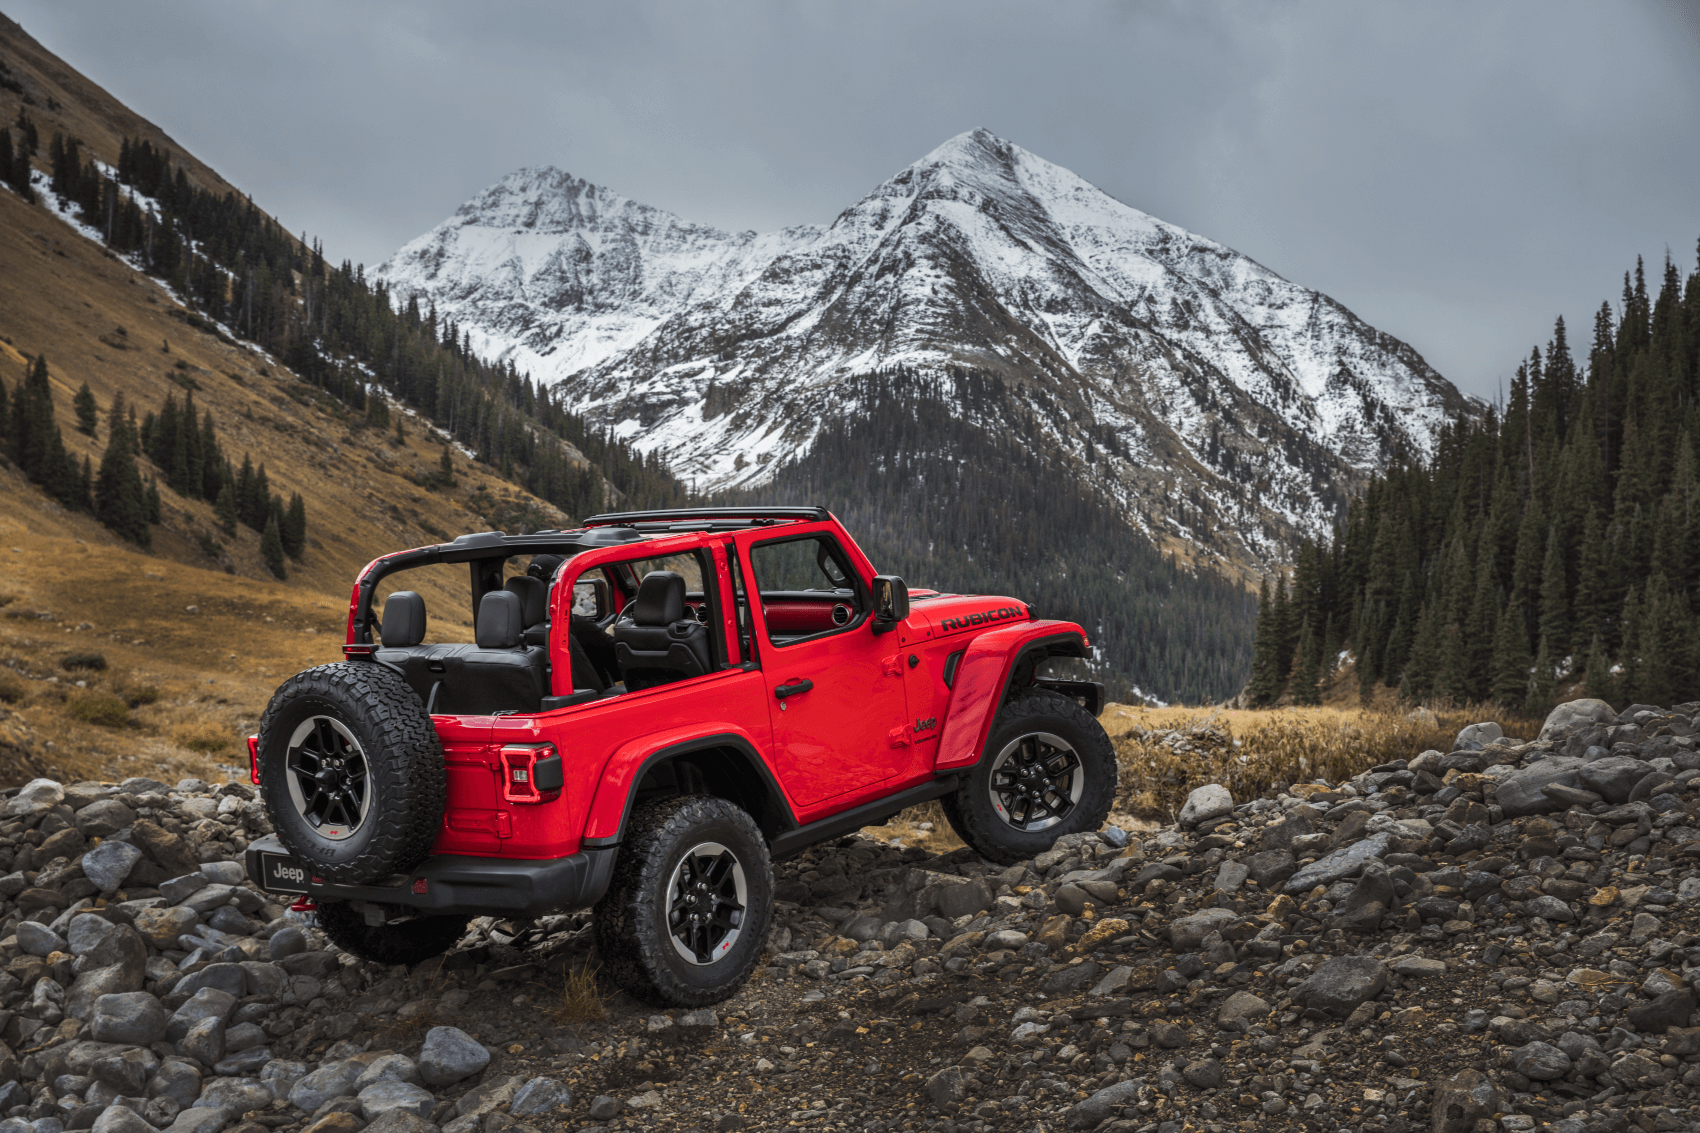 2021 Jeep Wrangler Red Off-Roading Mountains Dallas CDJR